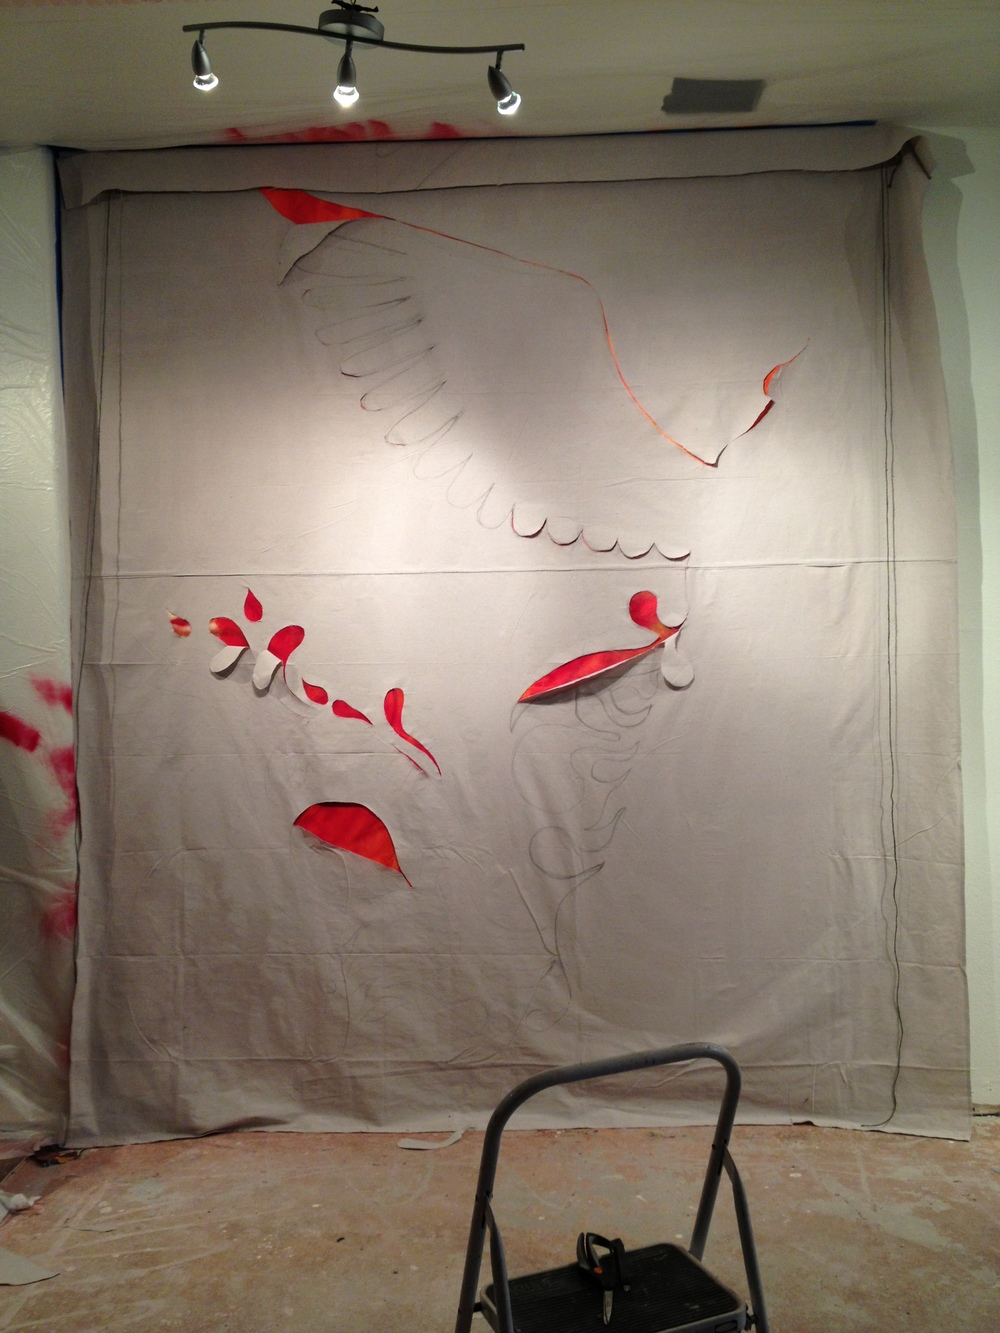 Next, I covered the bottom layer with canvas, and began cutting out a massive bird.